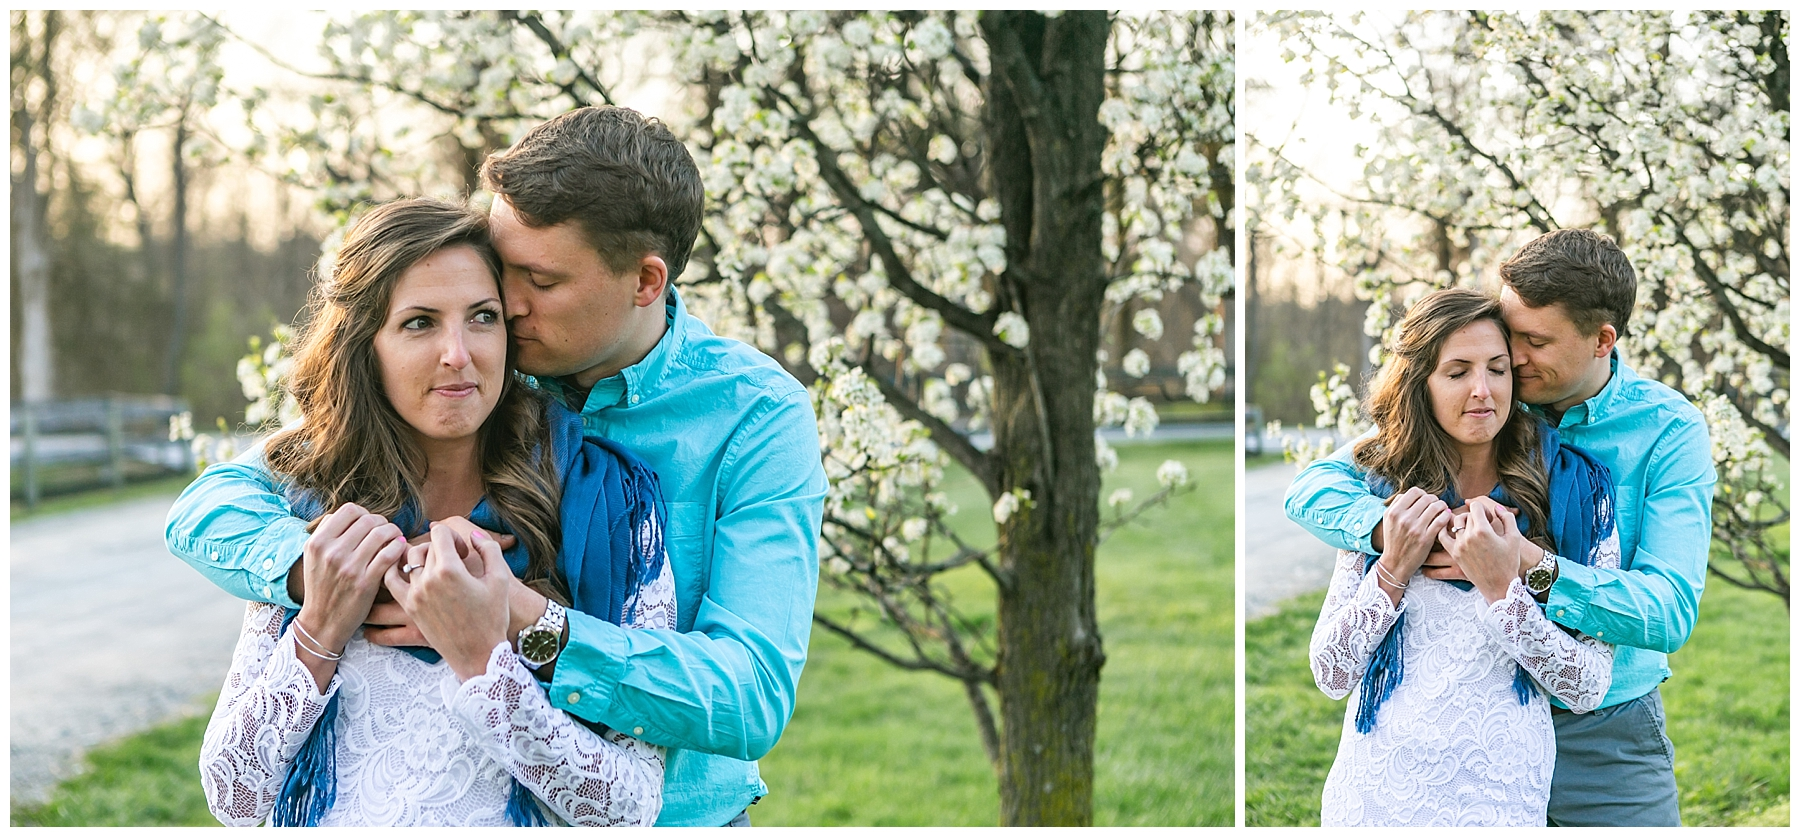 Chelsea Phil Private Estate Engagement Living Radiant Photography photos color_0031.jpg